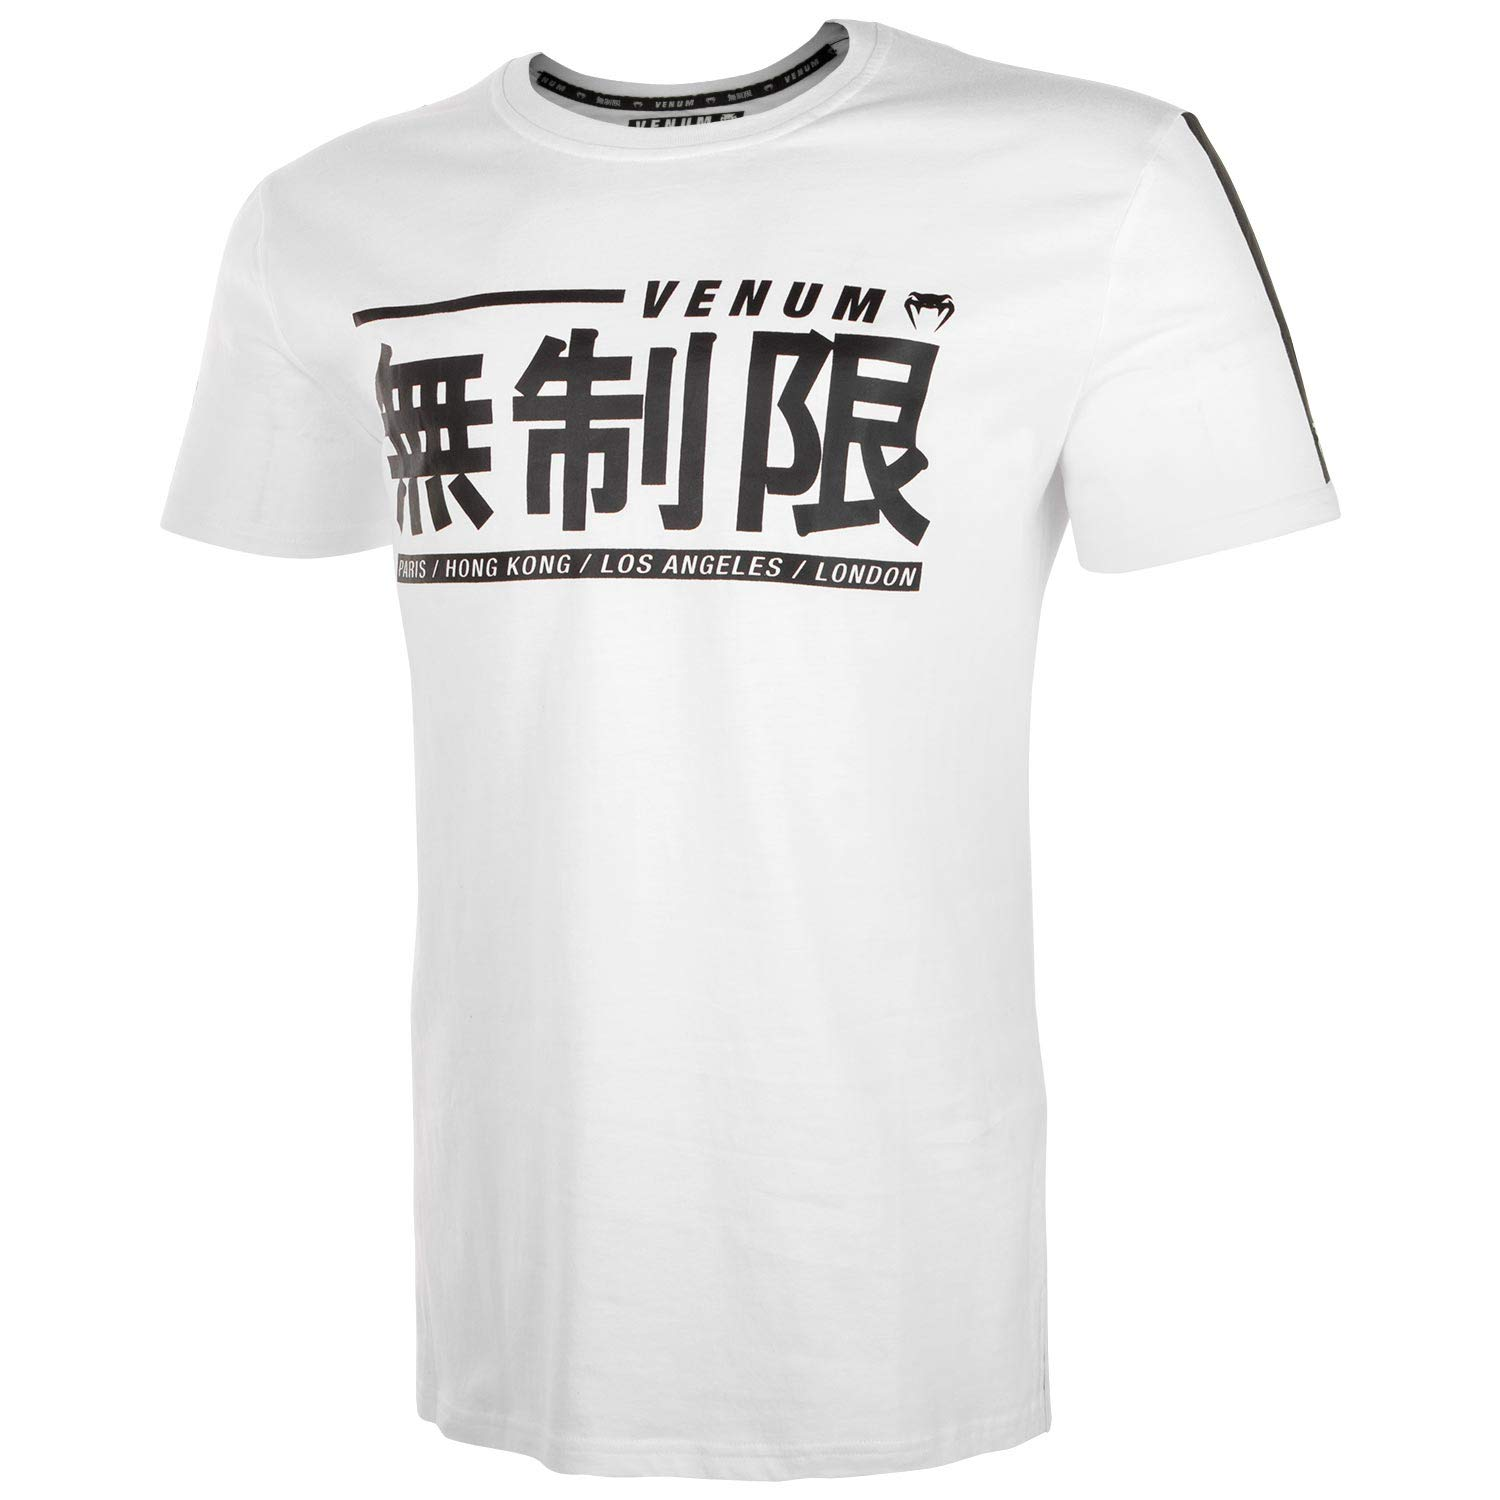 90d8cef17315 Venum Limitless T-Shirt - White T-Shirt Men | Amazon.com